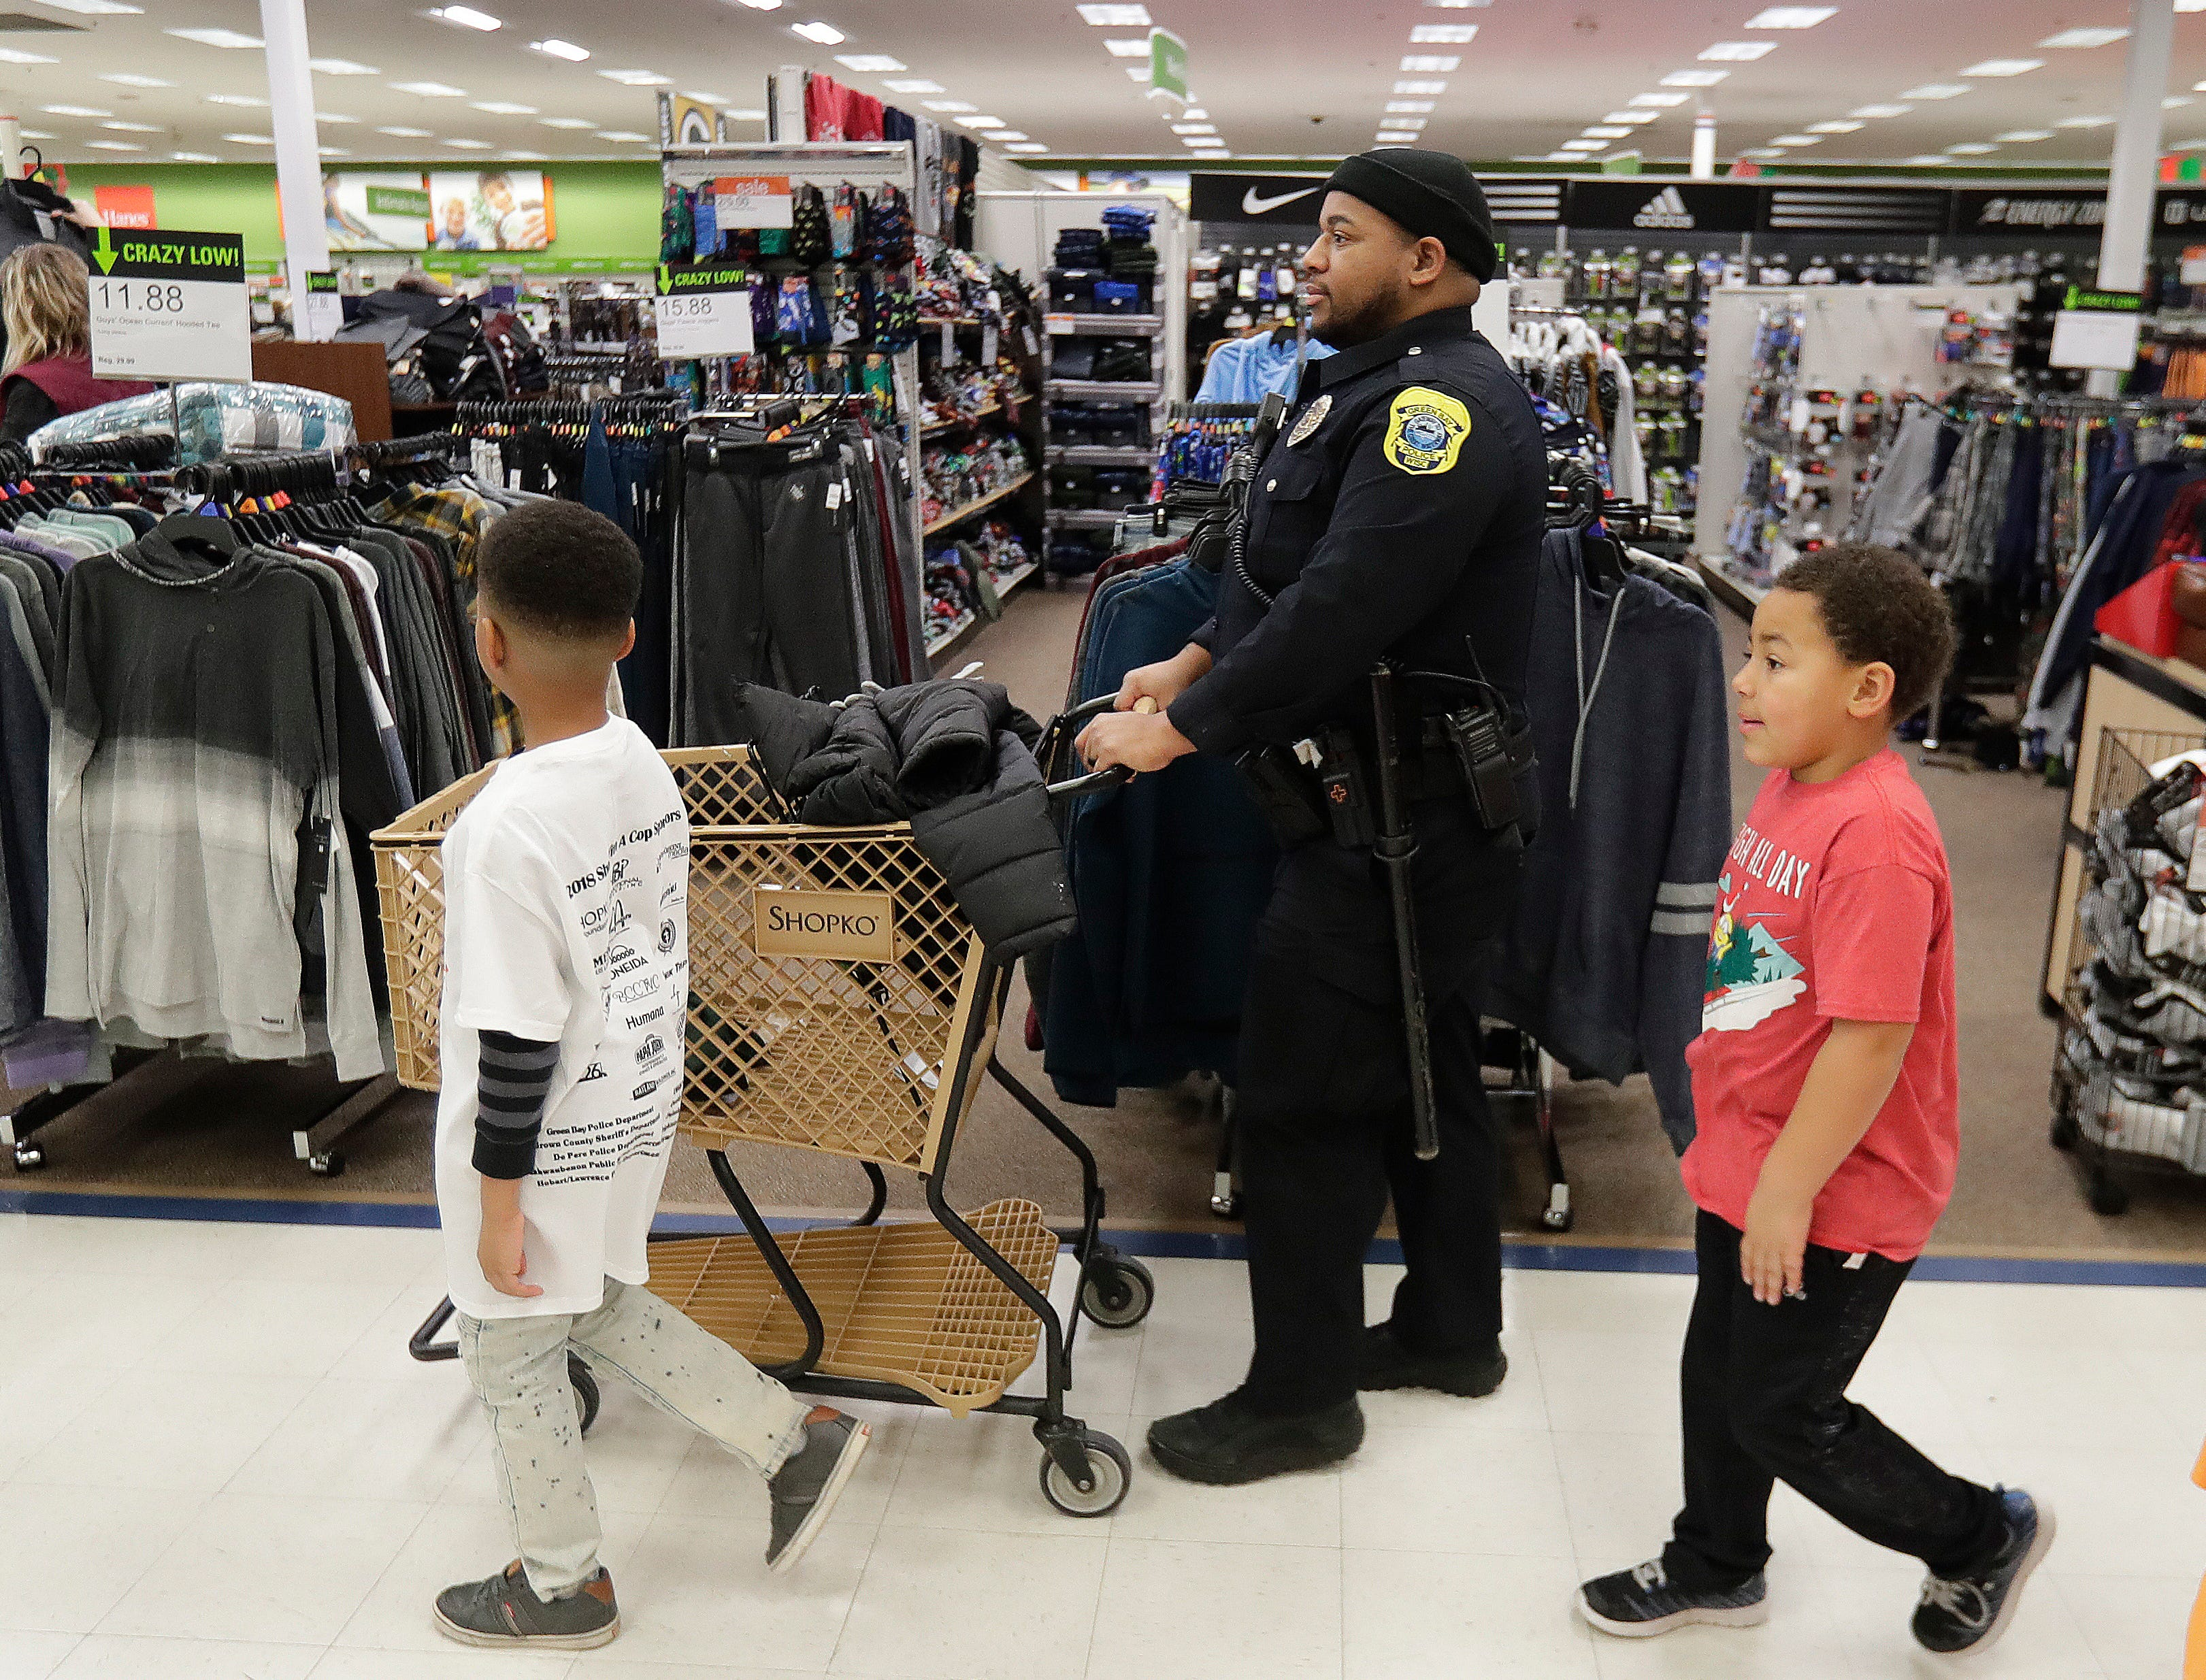 Green Bay Police Department Officer Aaron Walker shops with his Shop with A Cop program kids at Shopko on East Mason Street December 8, 2018 in Green Bay, Wis.